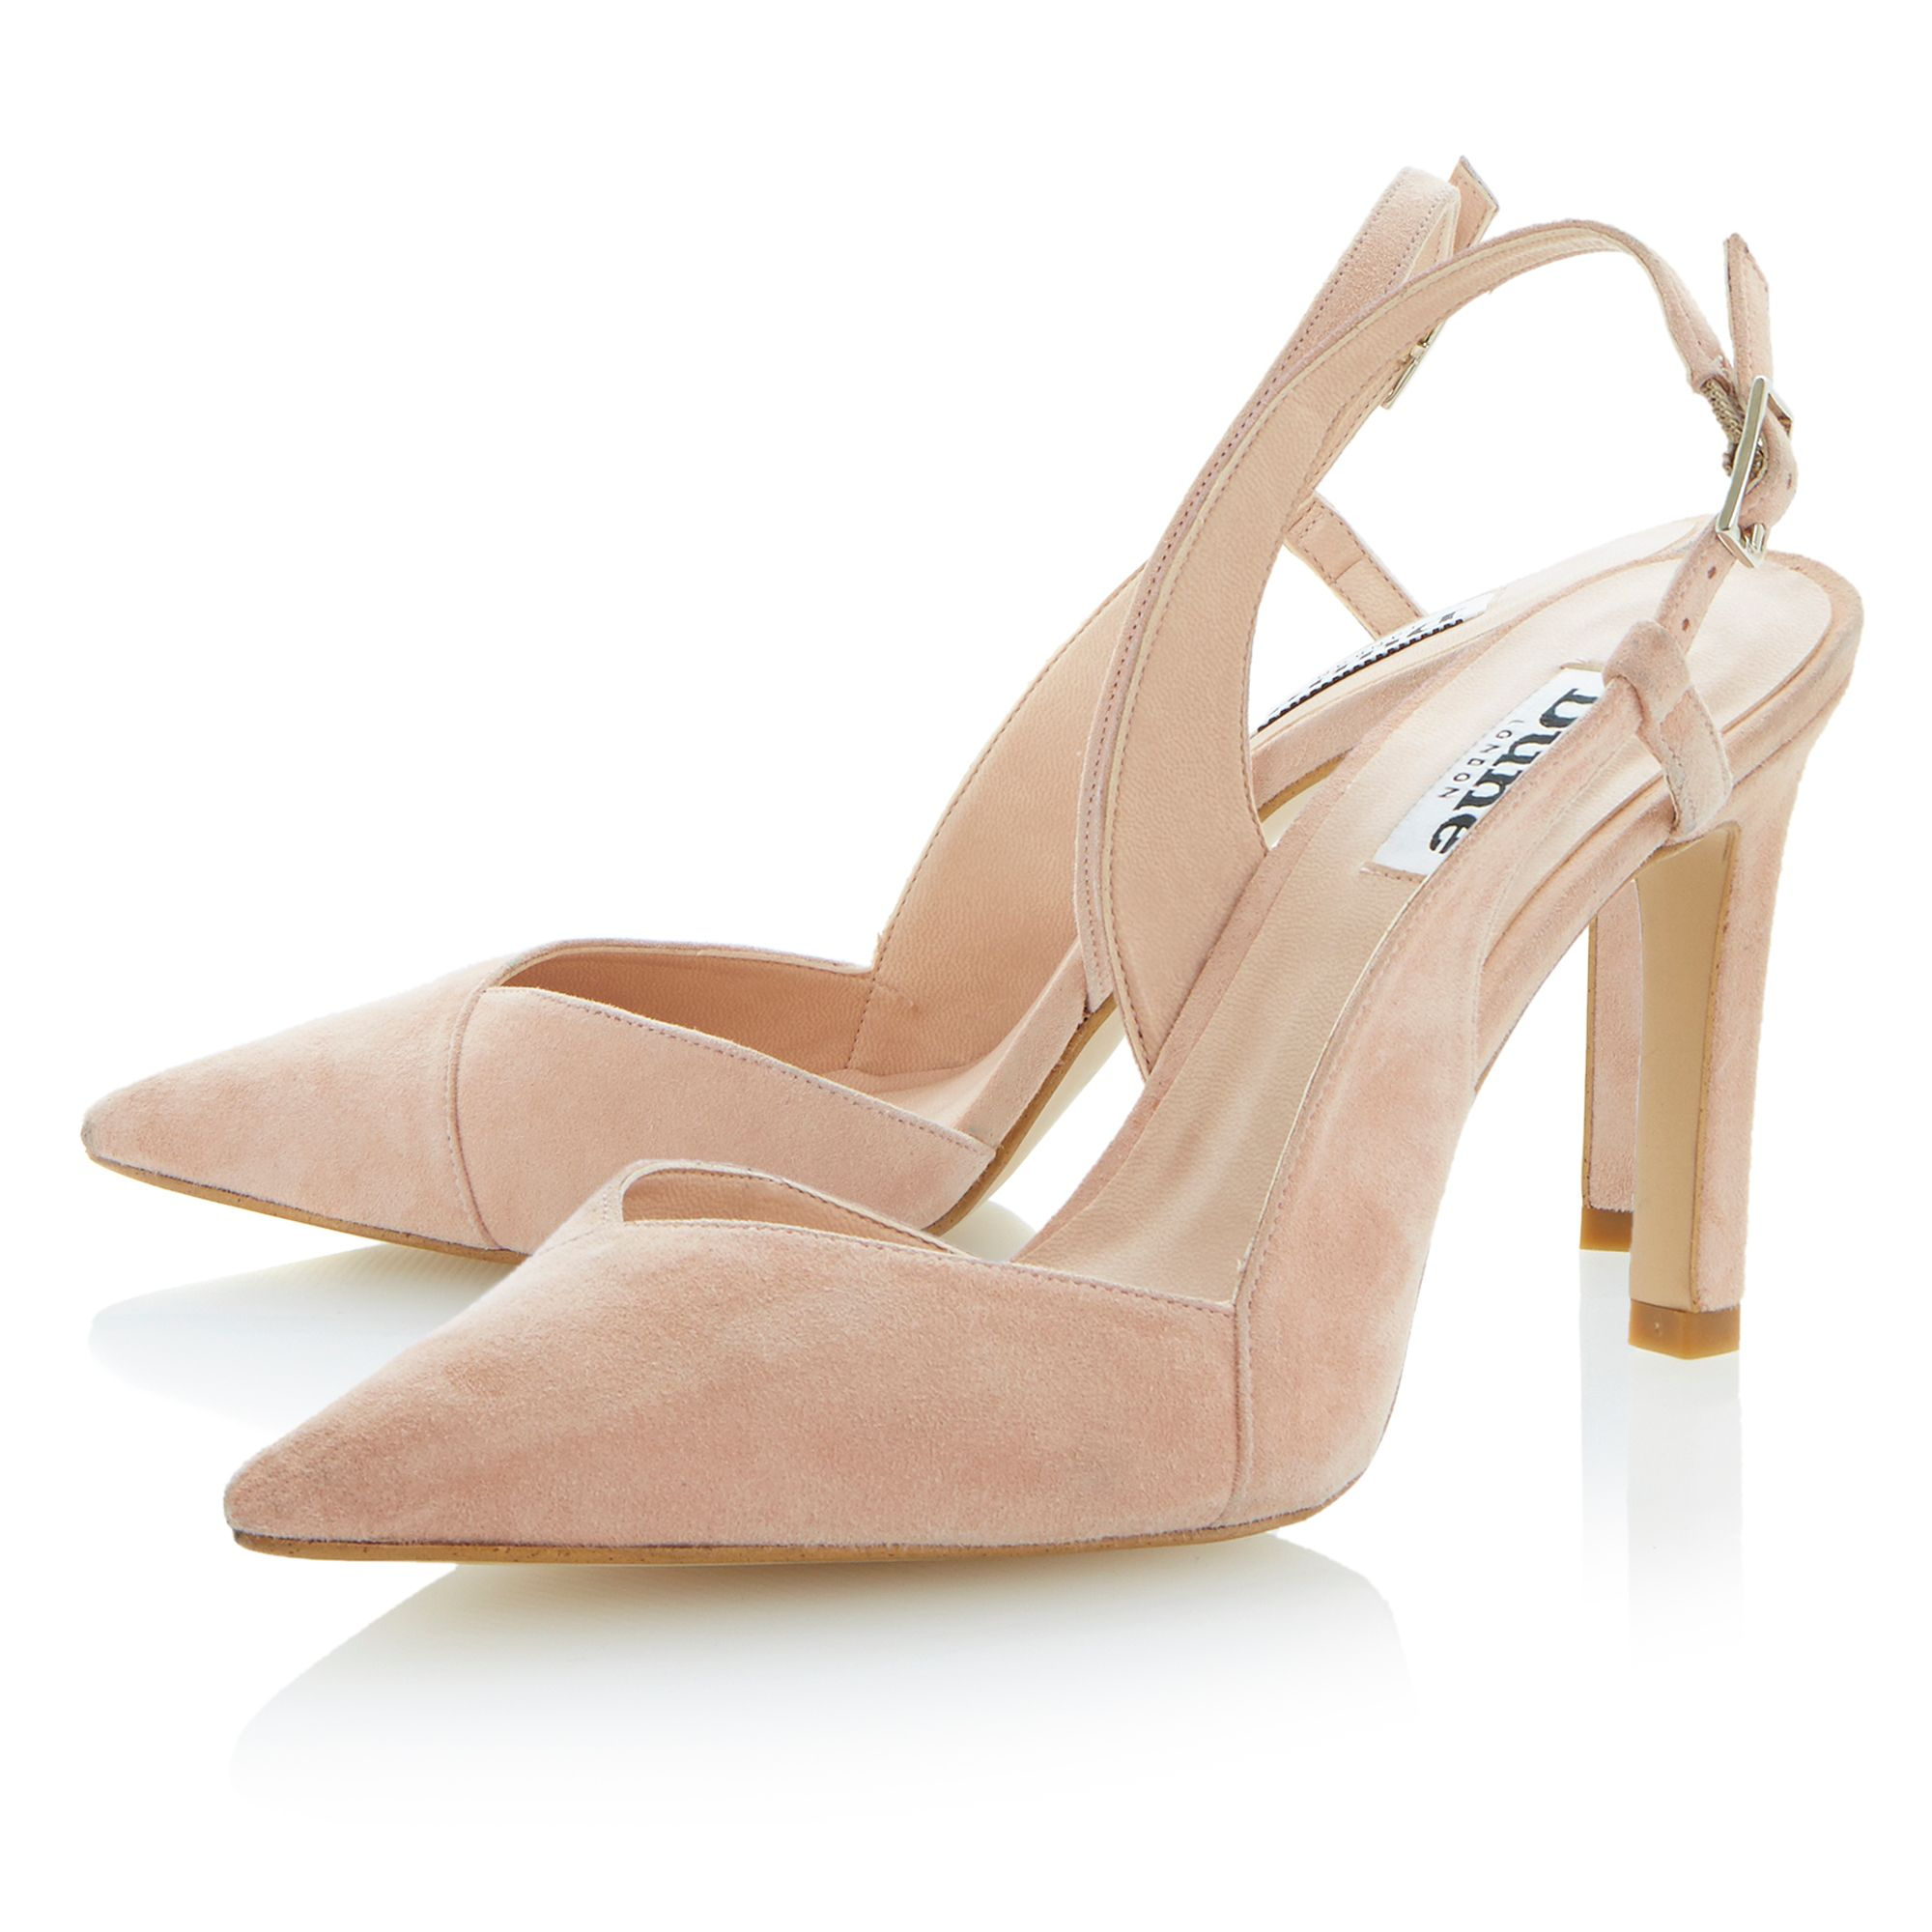 Carmella suede pointed toe stiletto court shoes